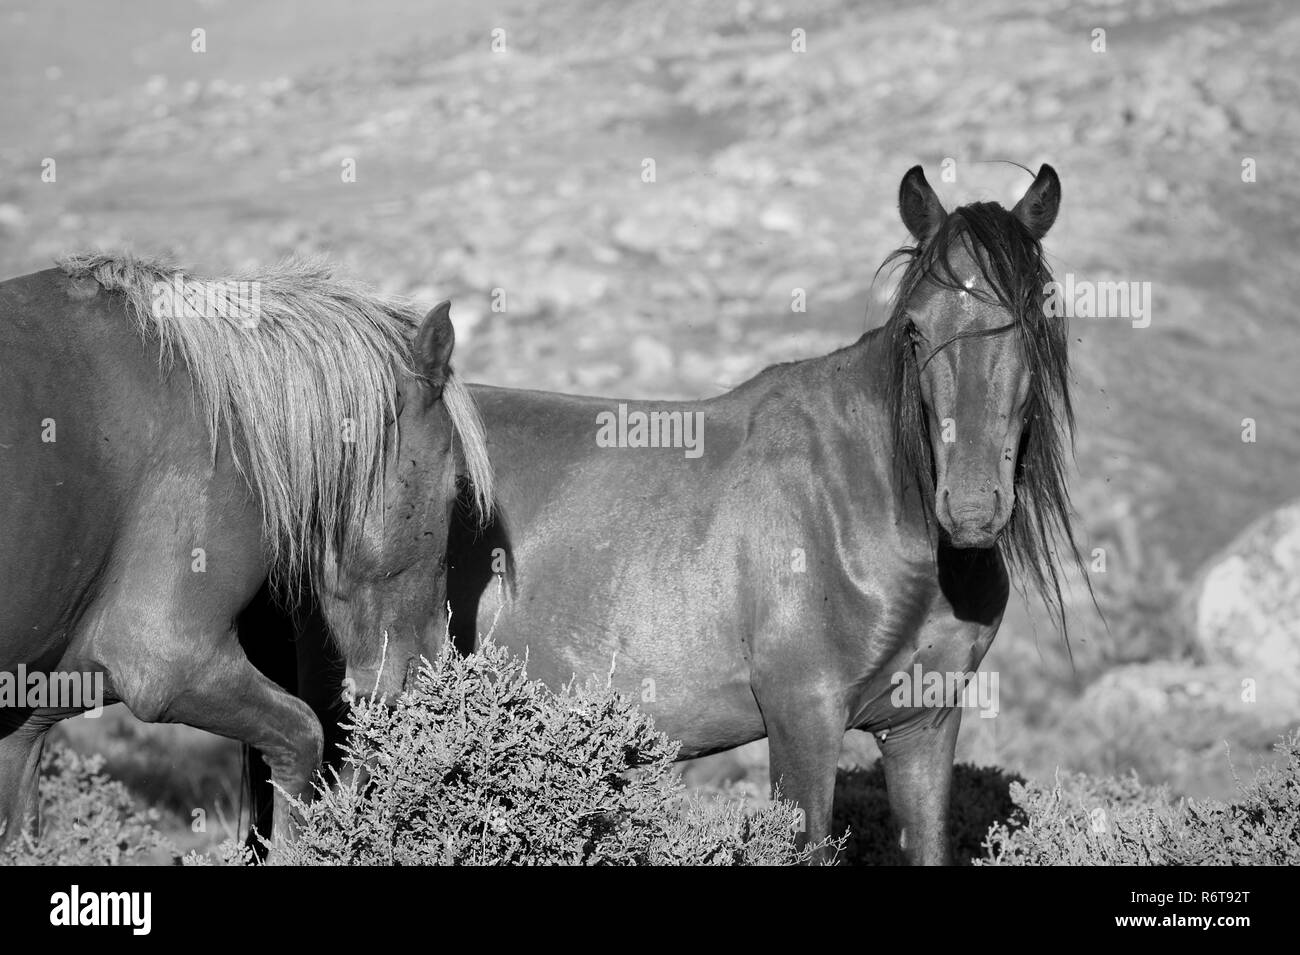 Young semi-wild horses in a mountain in the north of Portugal. - Stock Image